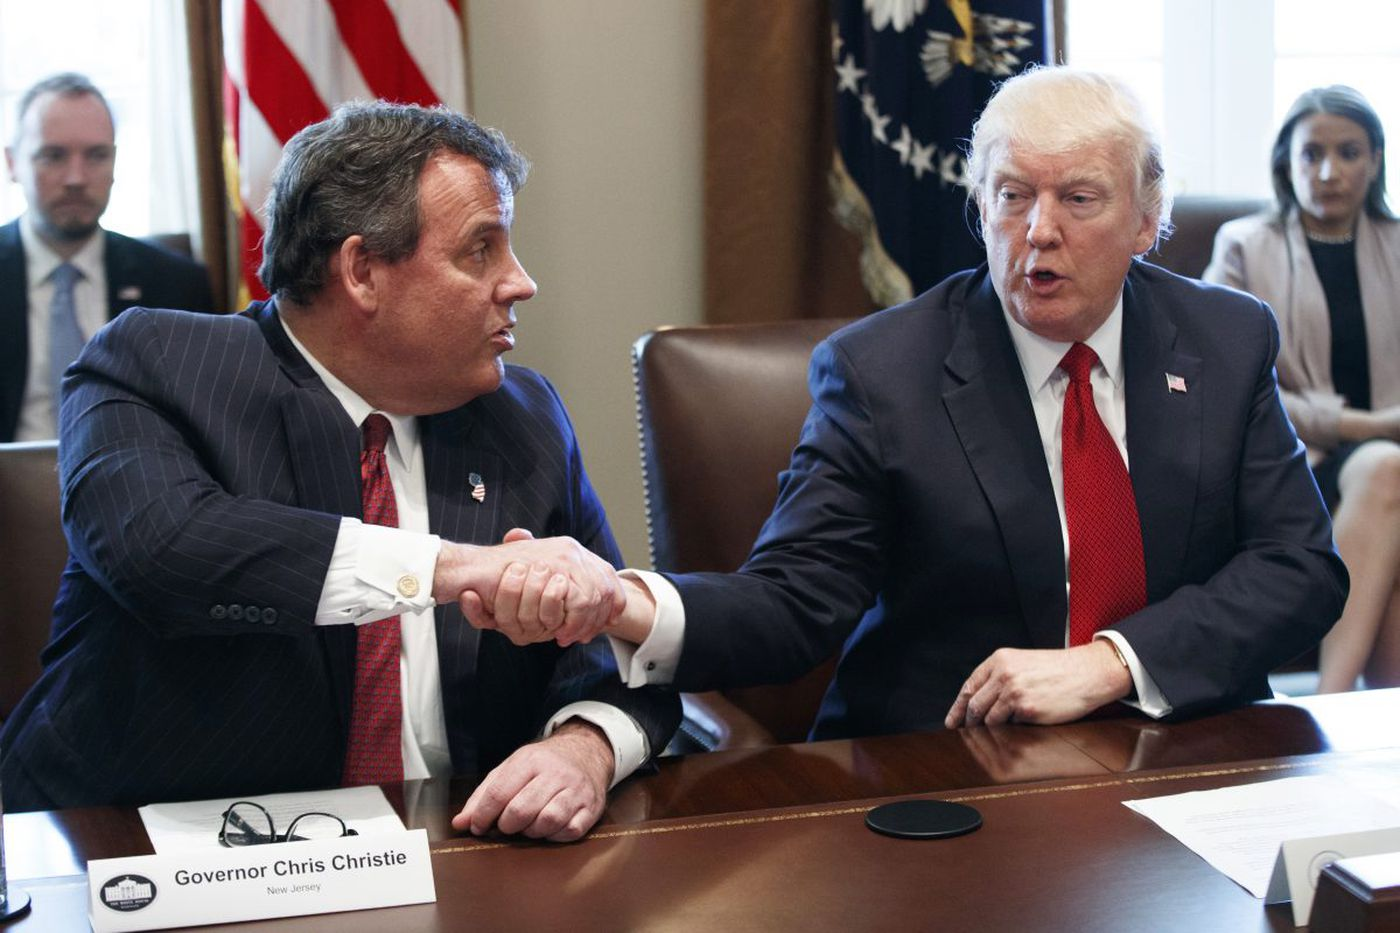 Trump poised to nominate Christie ally for U.S. attorney in complex political deal